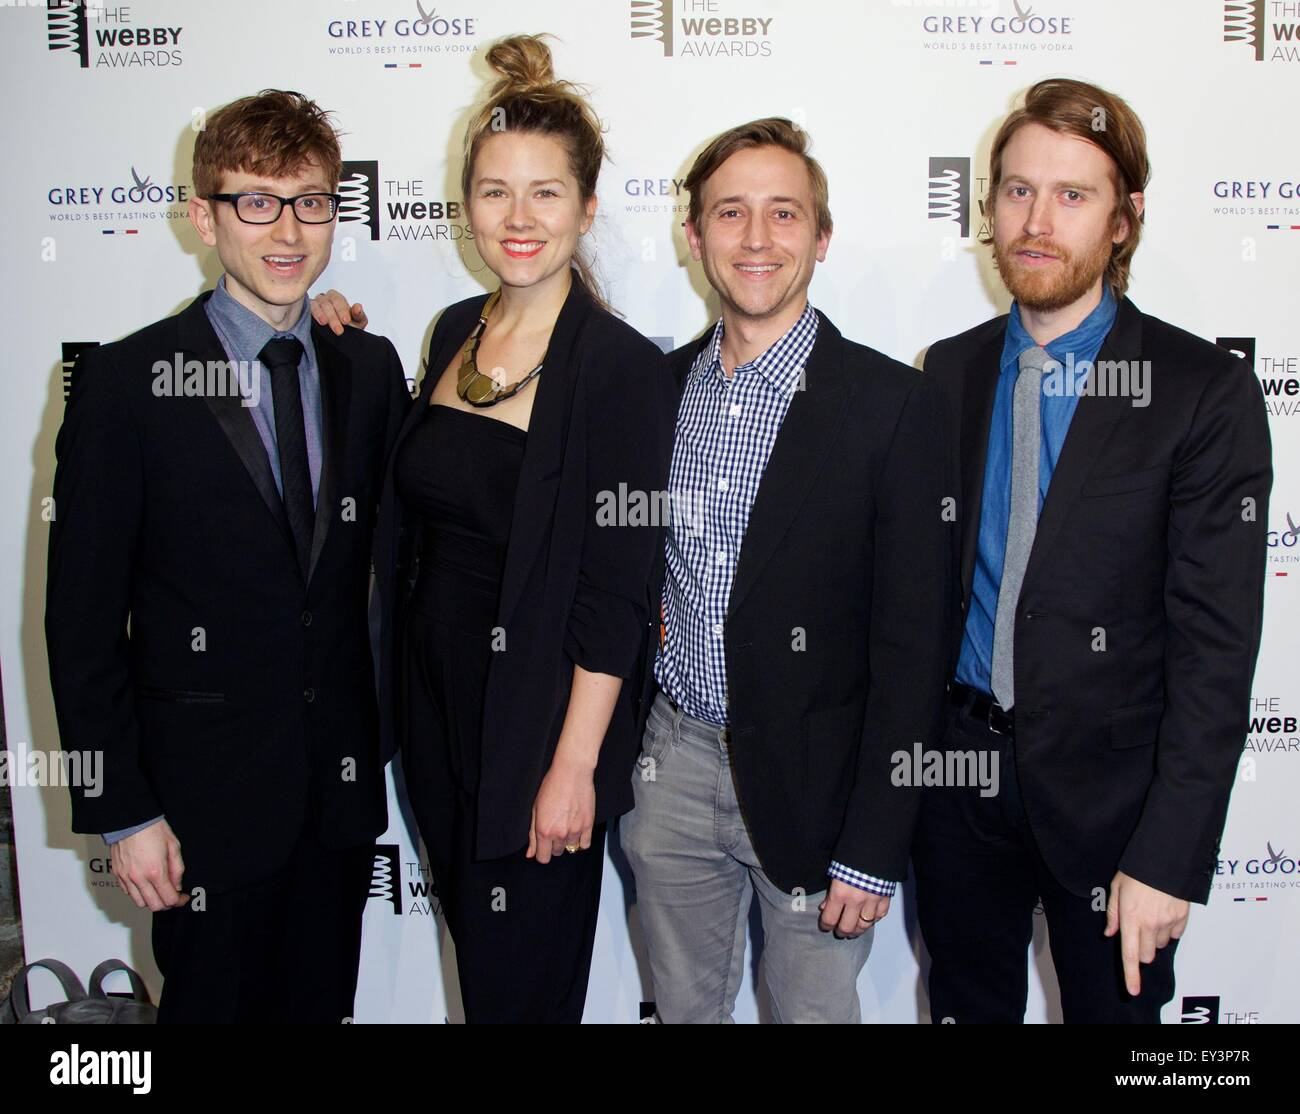 19th Annual Webby Awards at Cipriani Wall Street - Arrivals  Featuring: Michael Gregory, Sarah Fullen Gregory, Evan - Stock Image